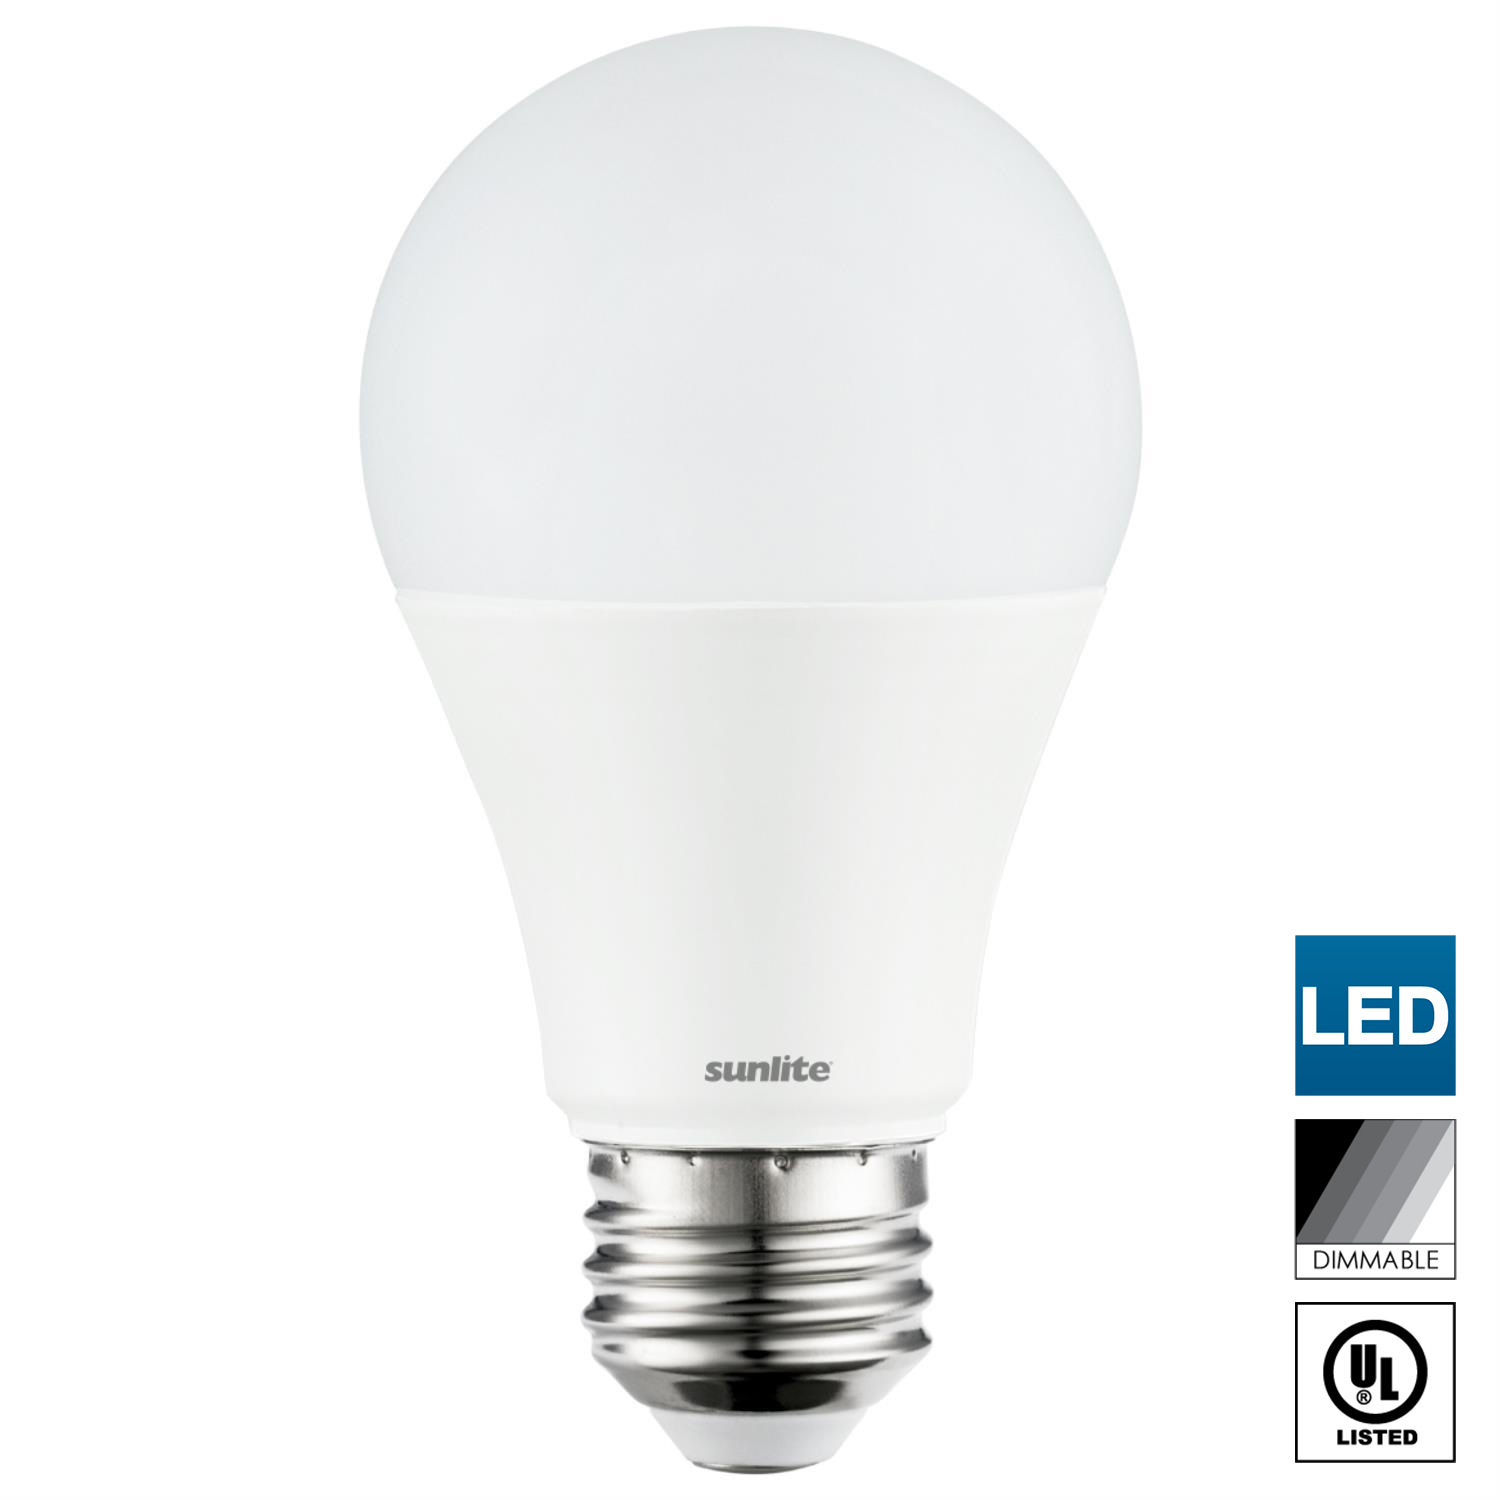 Sunlite Led A21 Light Bulb Dimmable 15 Watts 100w Equal